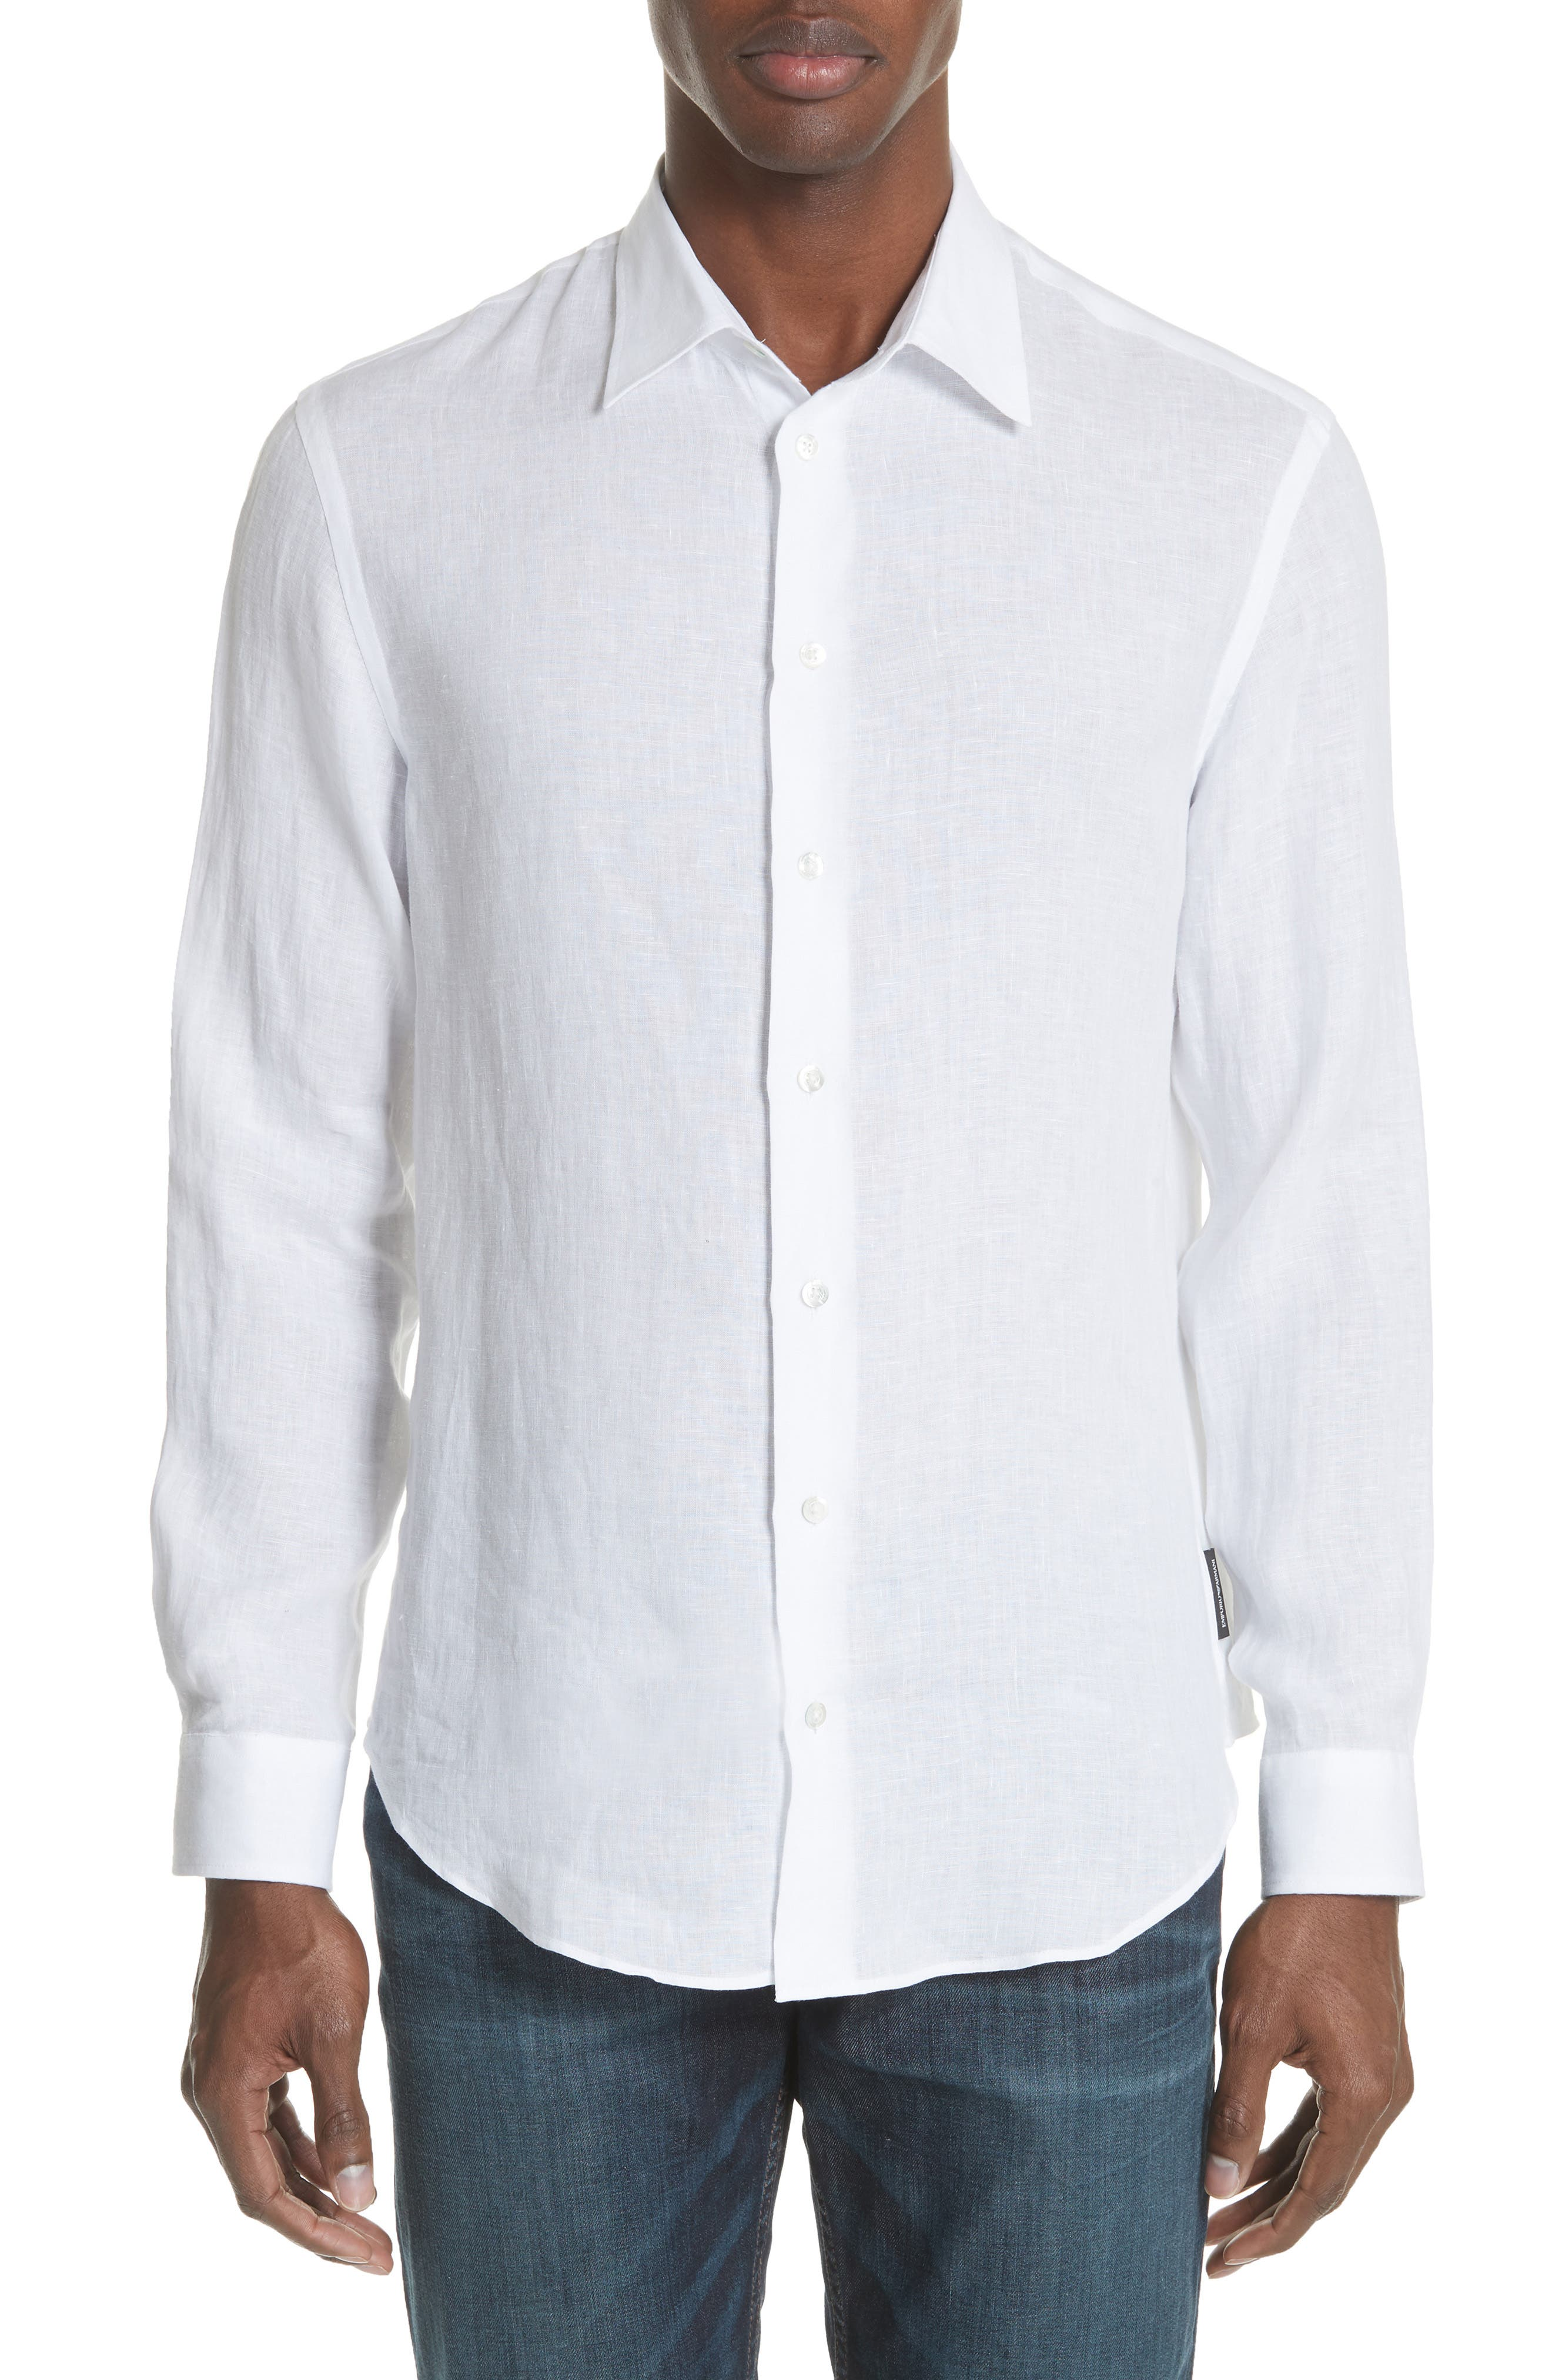 Regular Fit Linen Dress Shirt,                         Main,                         color, White